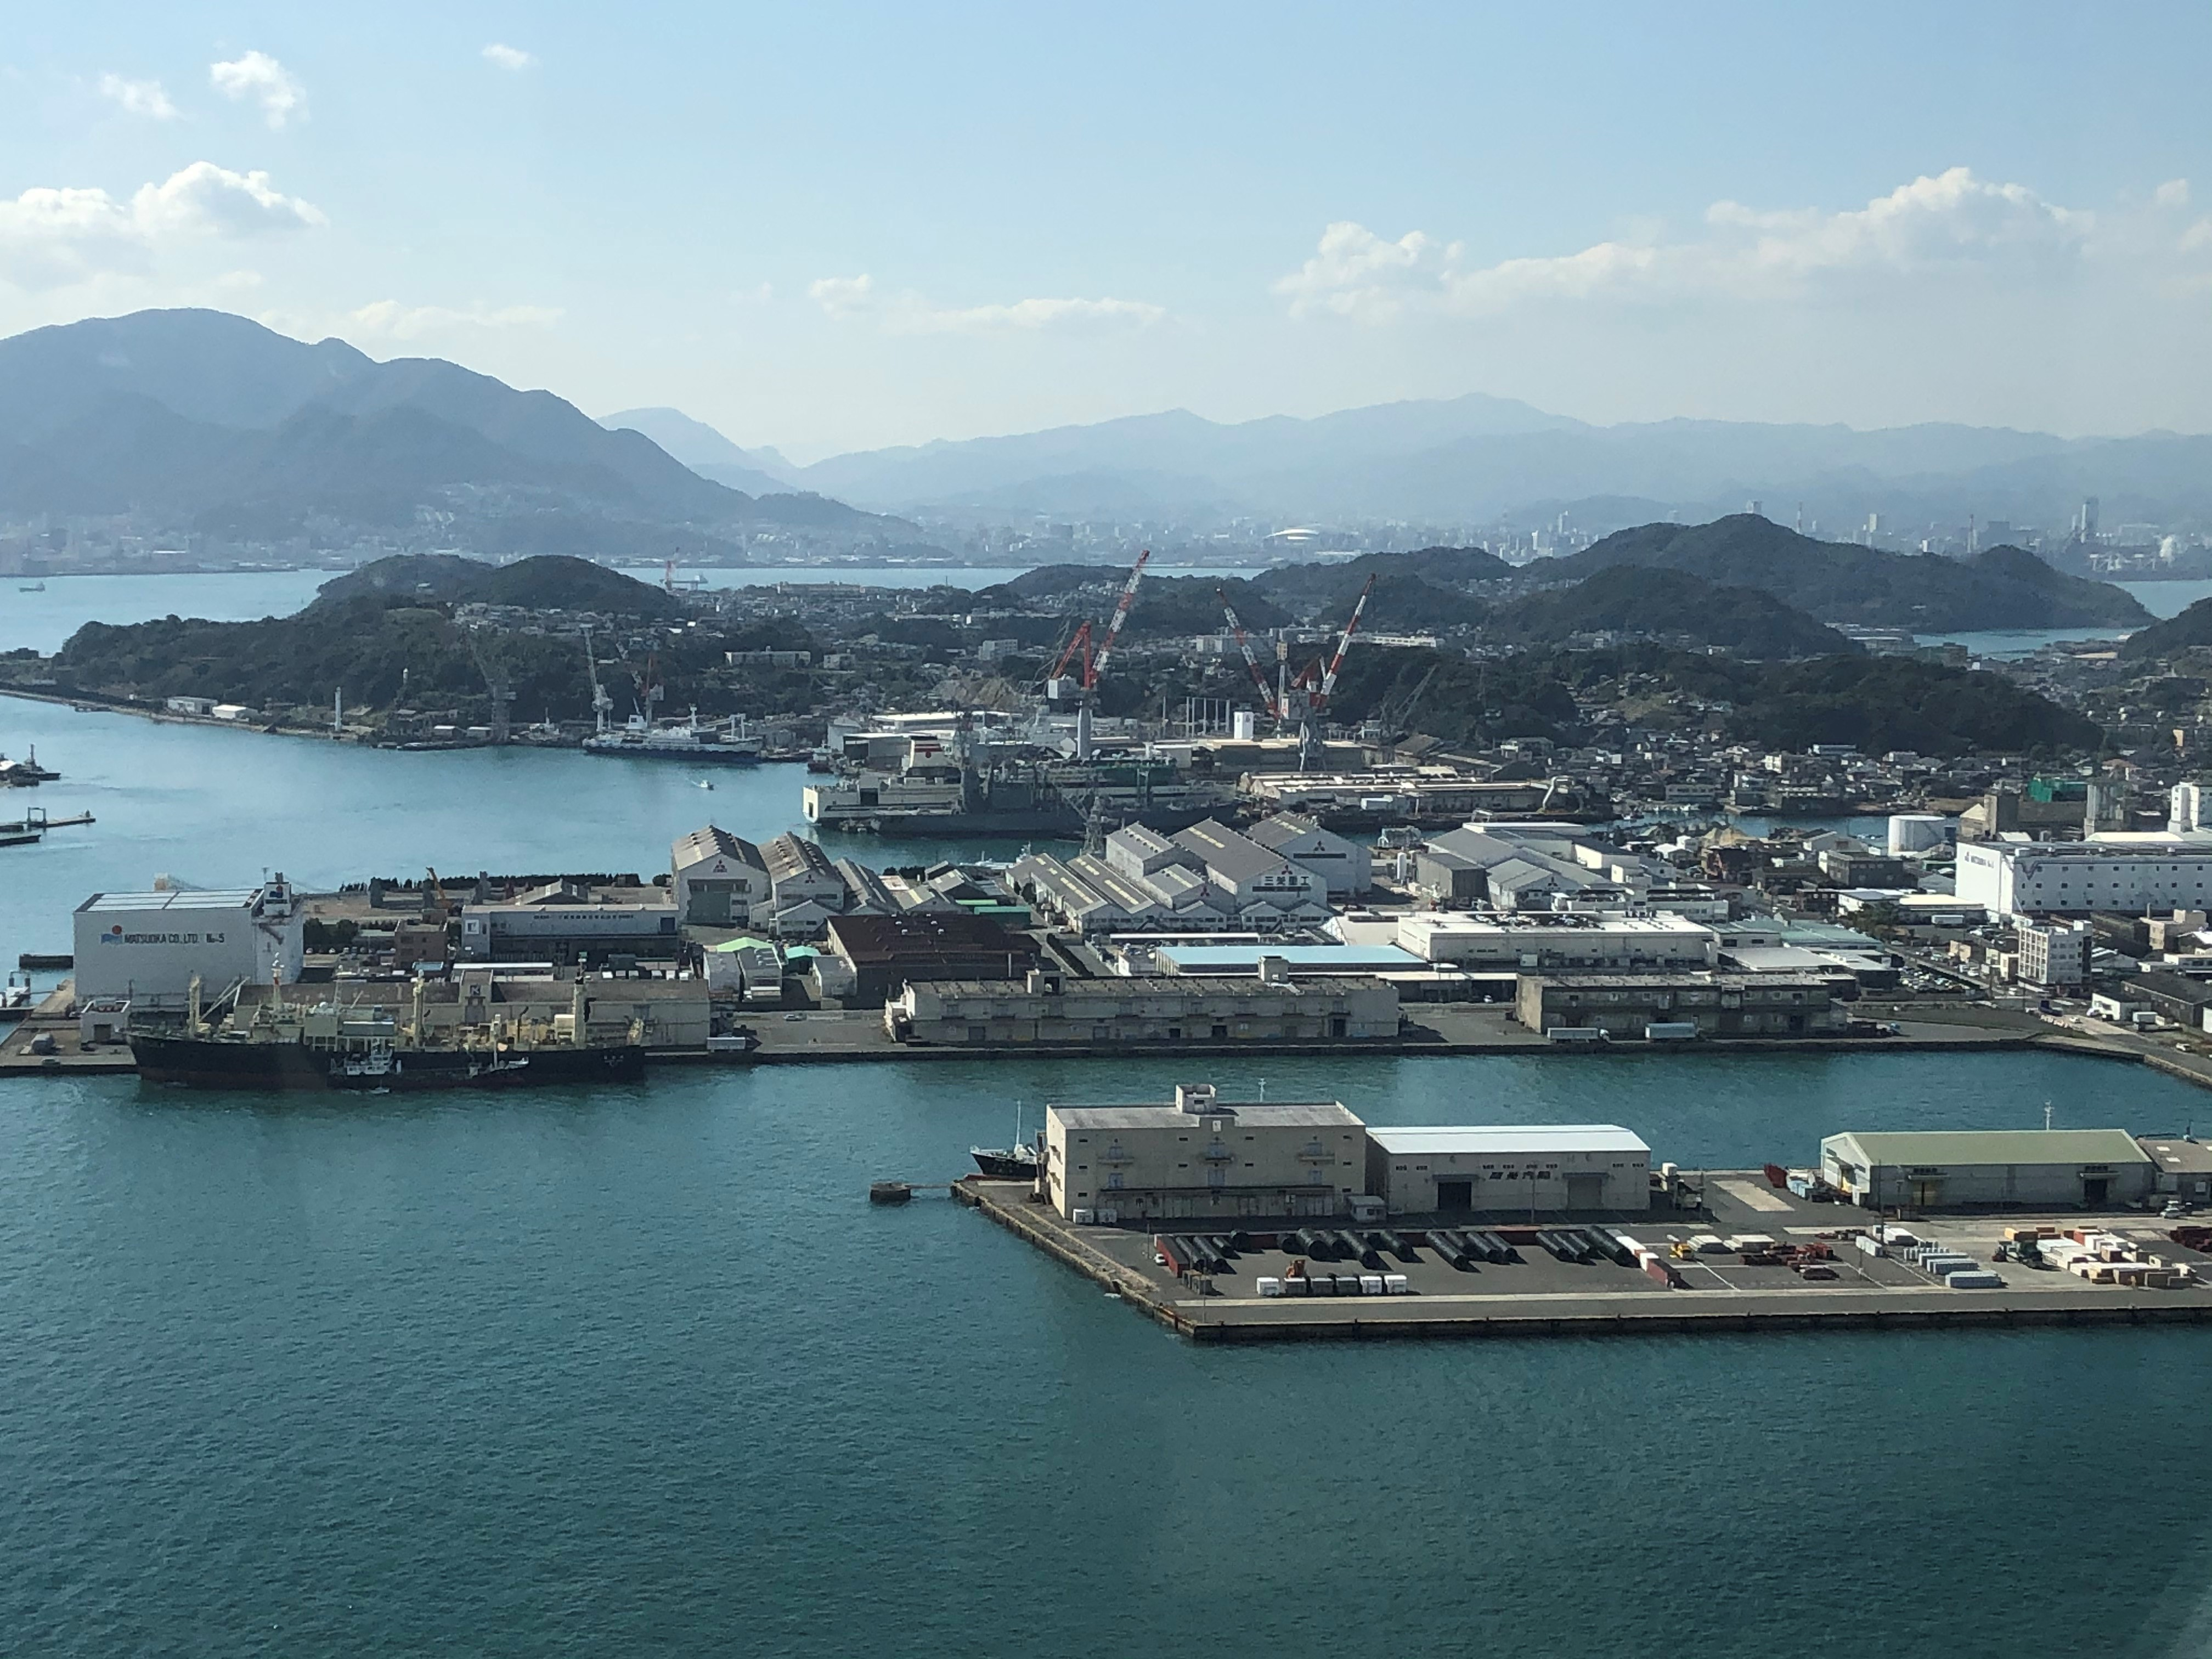 Mitsubishi Shimonoseki Shipyard, where the vessels with Valmet scrubbers are manufactured, is located on the Kanmon Strait in Japan.